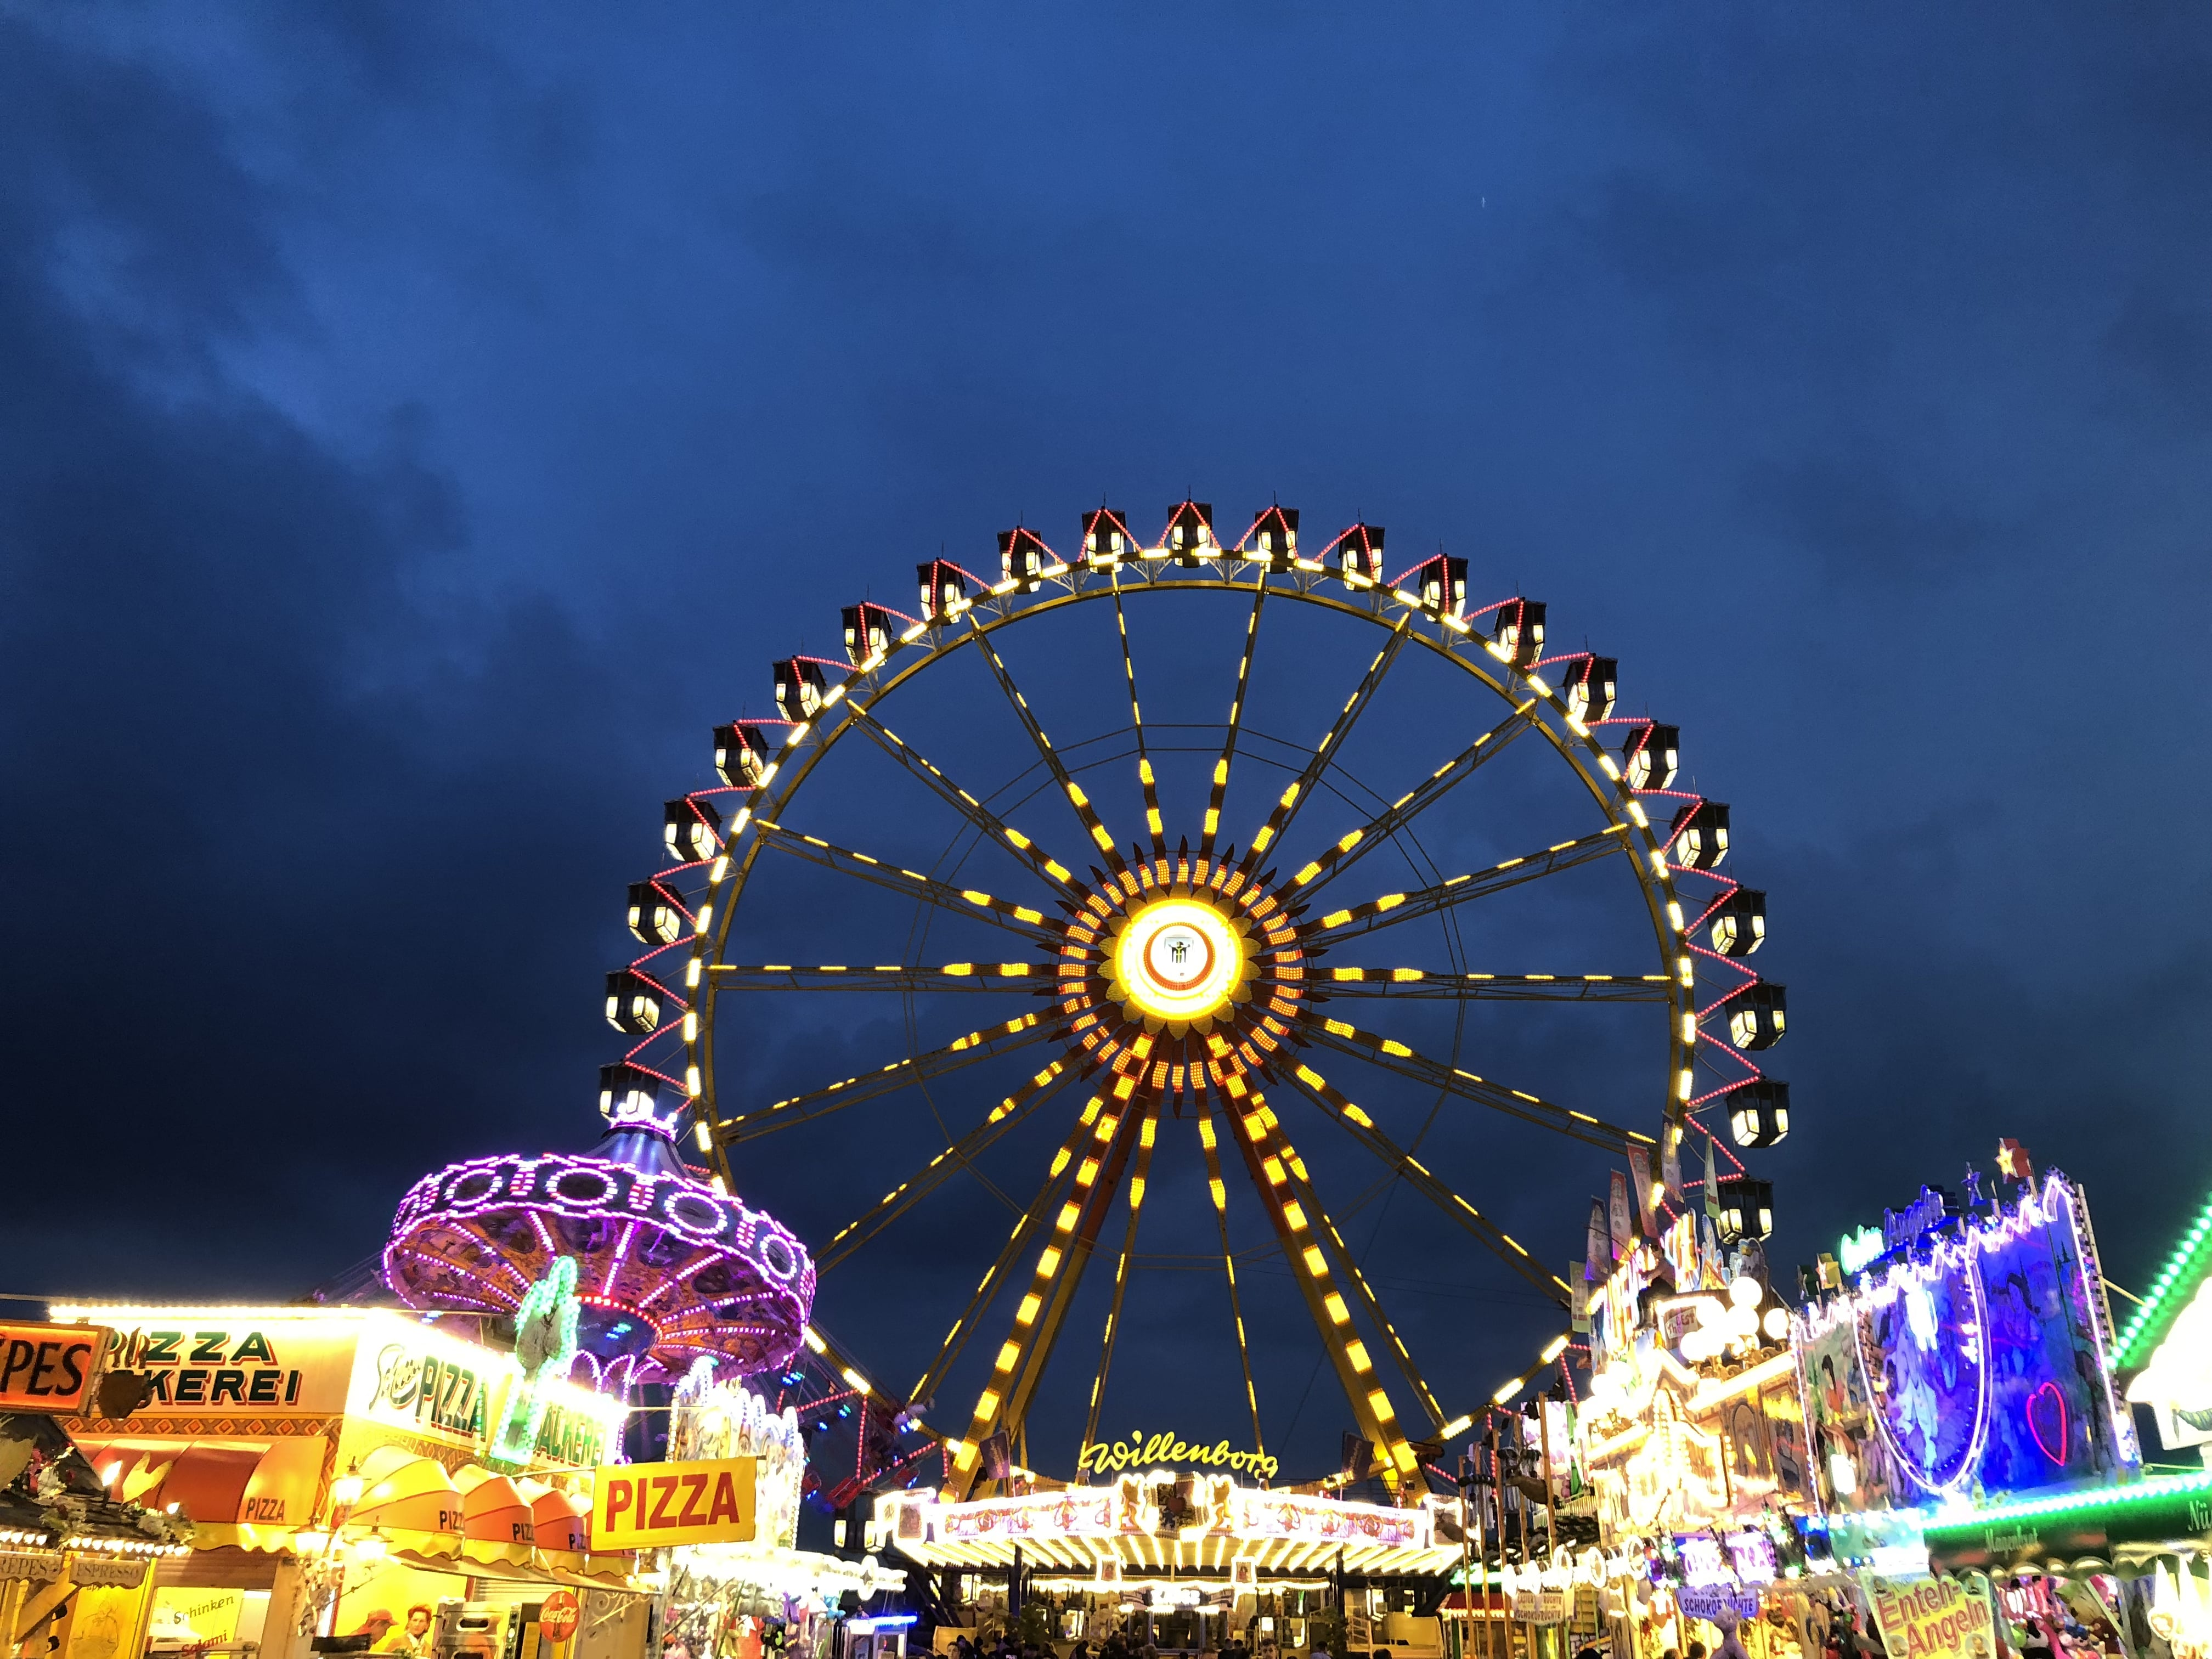 Frühlingfest | Photo by Wilson Carletti (All Rights Reserved)